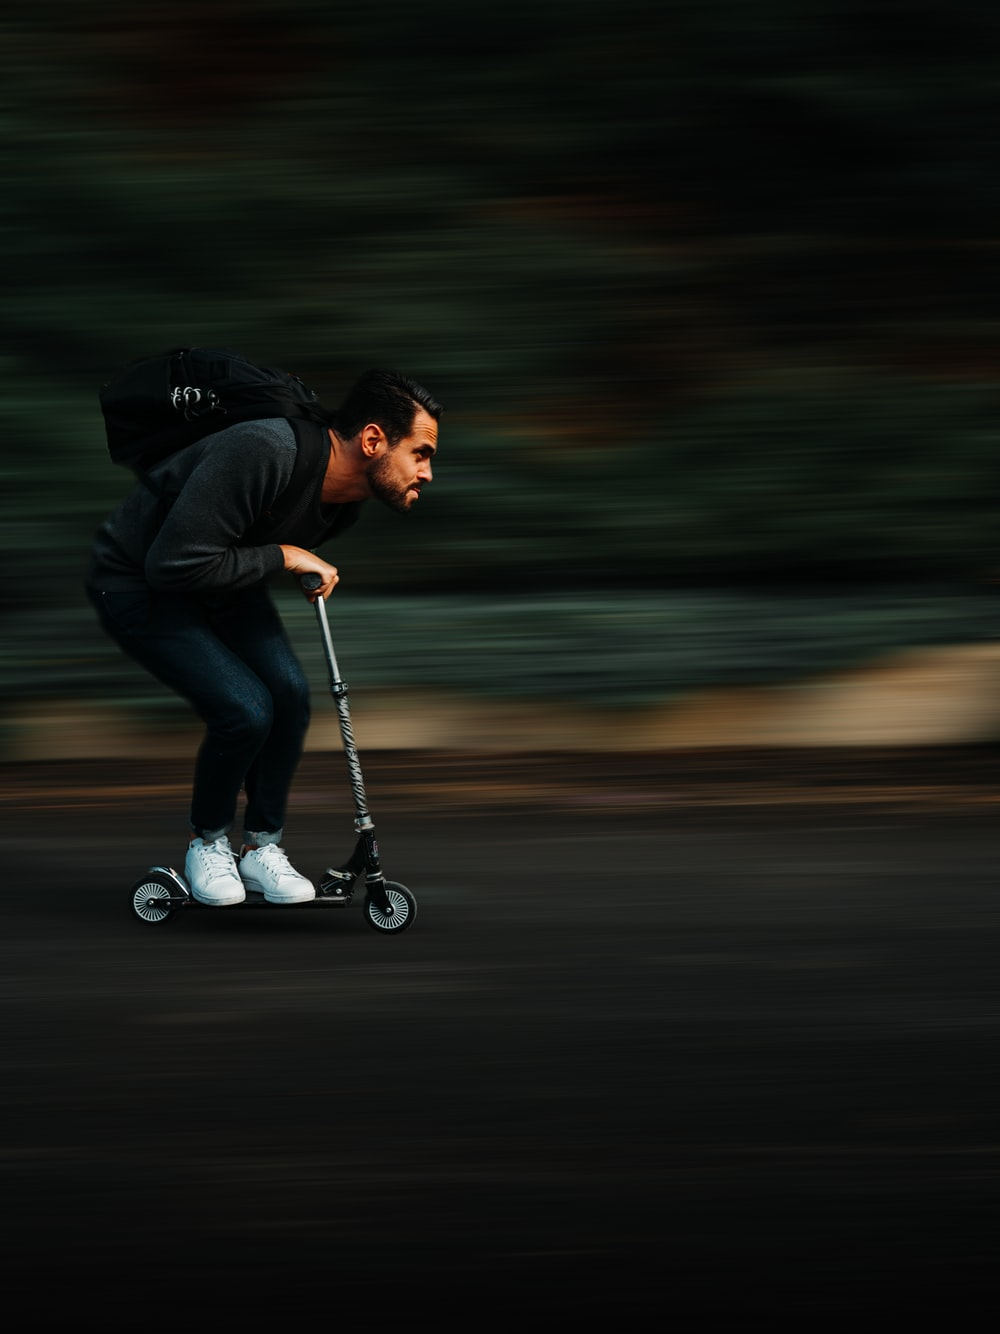 man riding kick scooter with fast speed